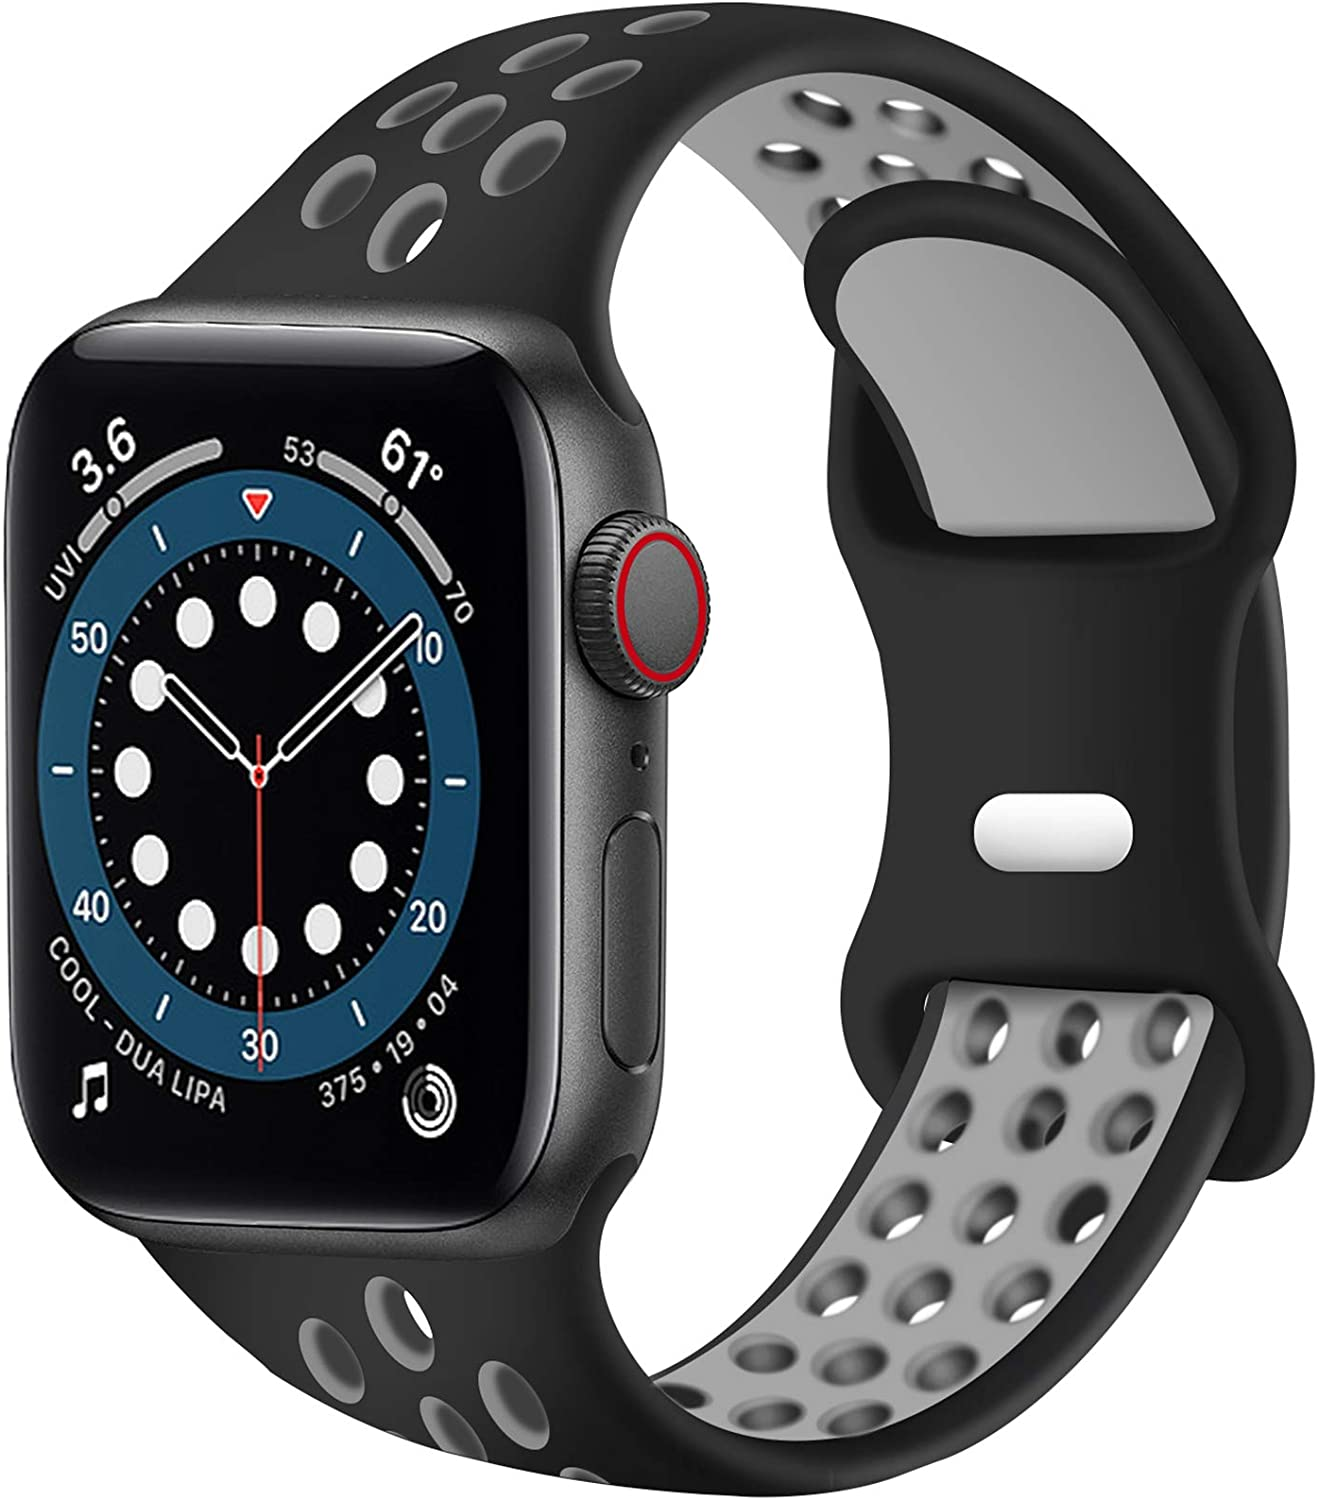 SVISVIPA Sport Bands Compatible for Apple Watch Bands 42mm 44mm,Breathable Soft Silicone Sport Women Men Replacement Strap Compatible with iWatch Series SE/6/5/4/3/2/1,Black Gray